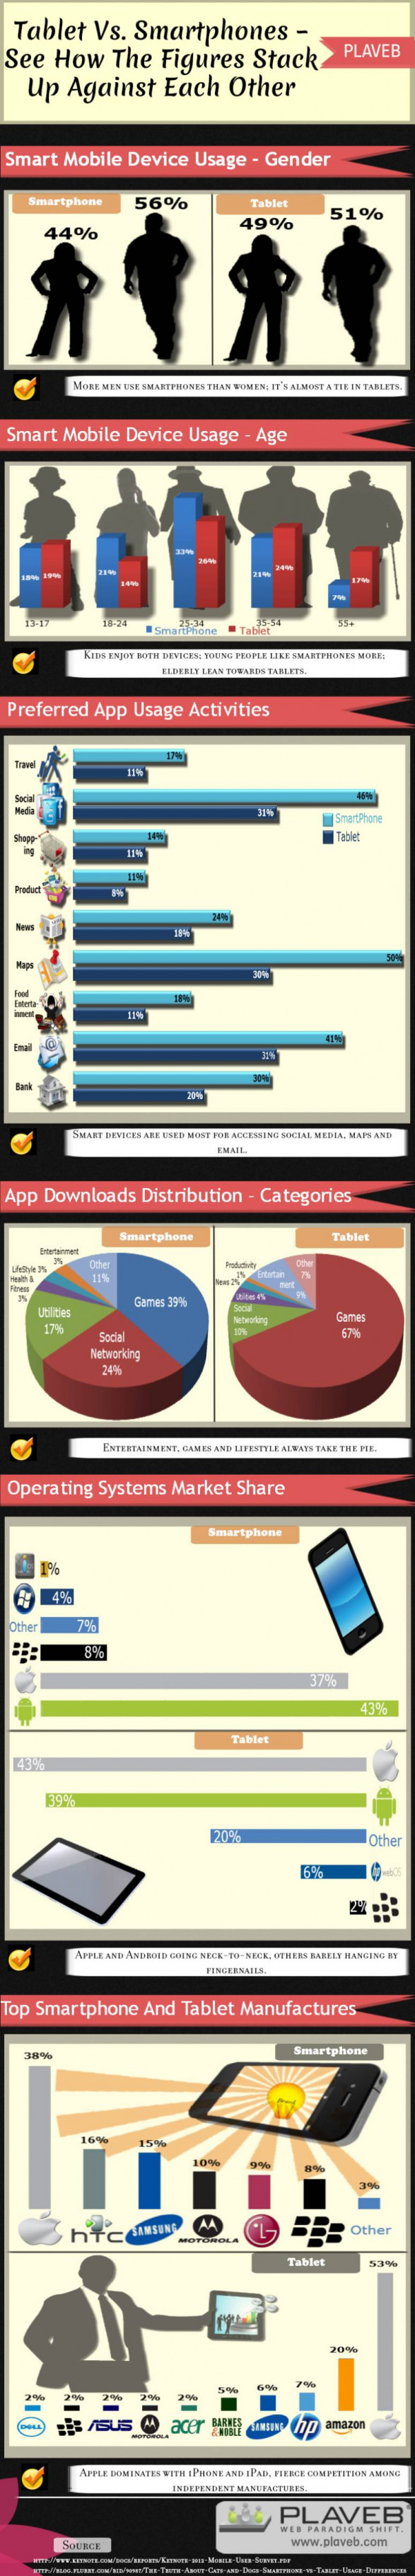 Tablet Vs. Smartphones � See how the figures stack up against each other !! INFOGRAPHIC